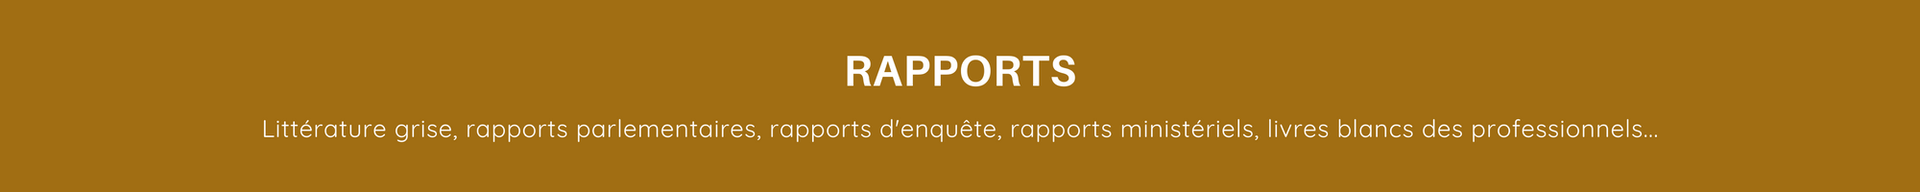 RAPPORTS (2).png